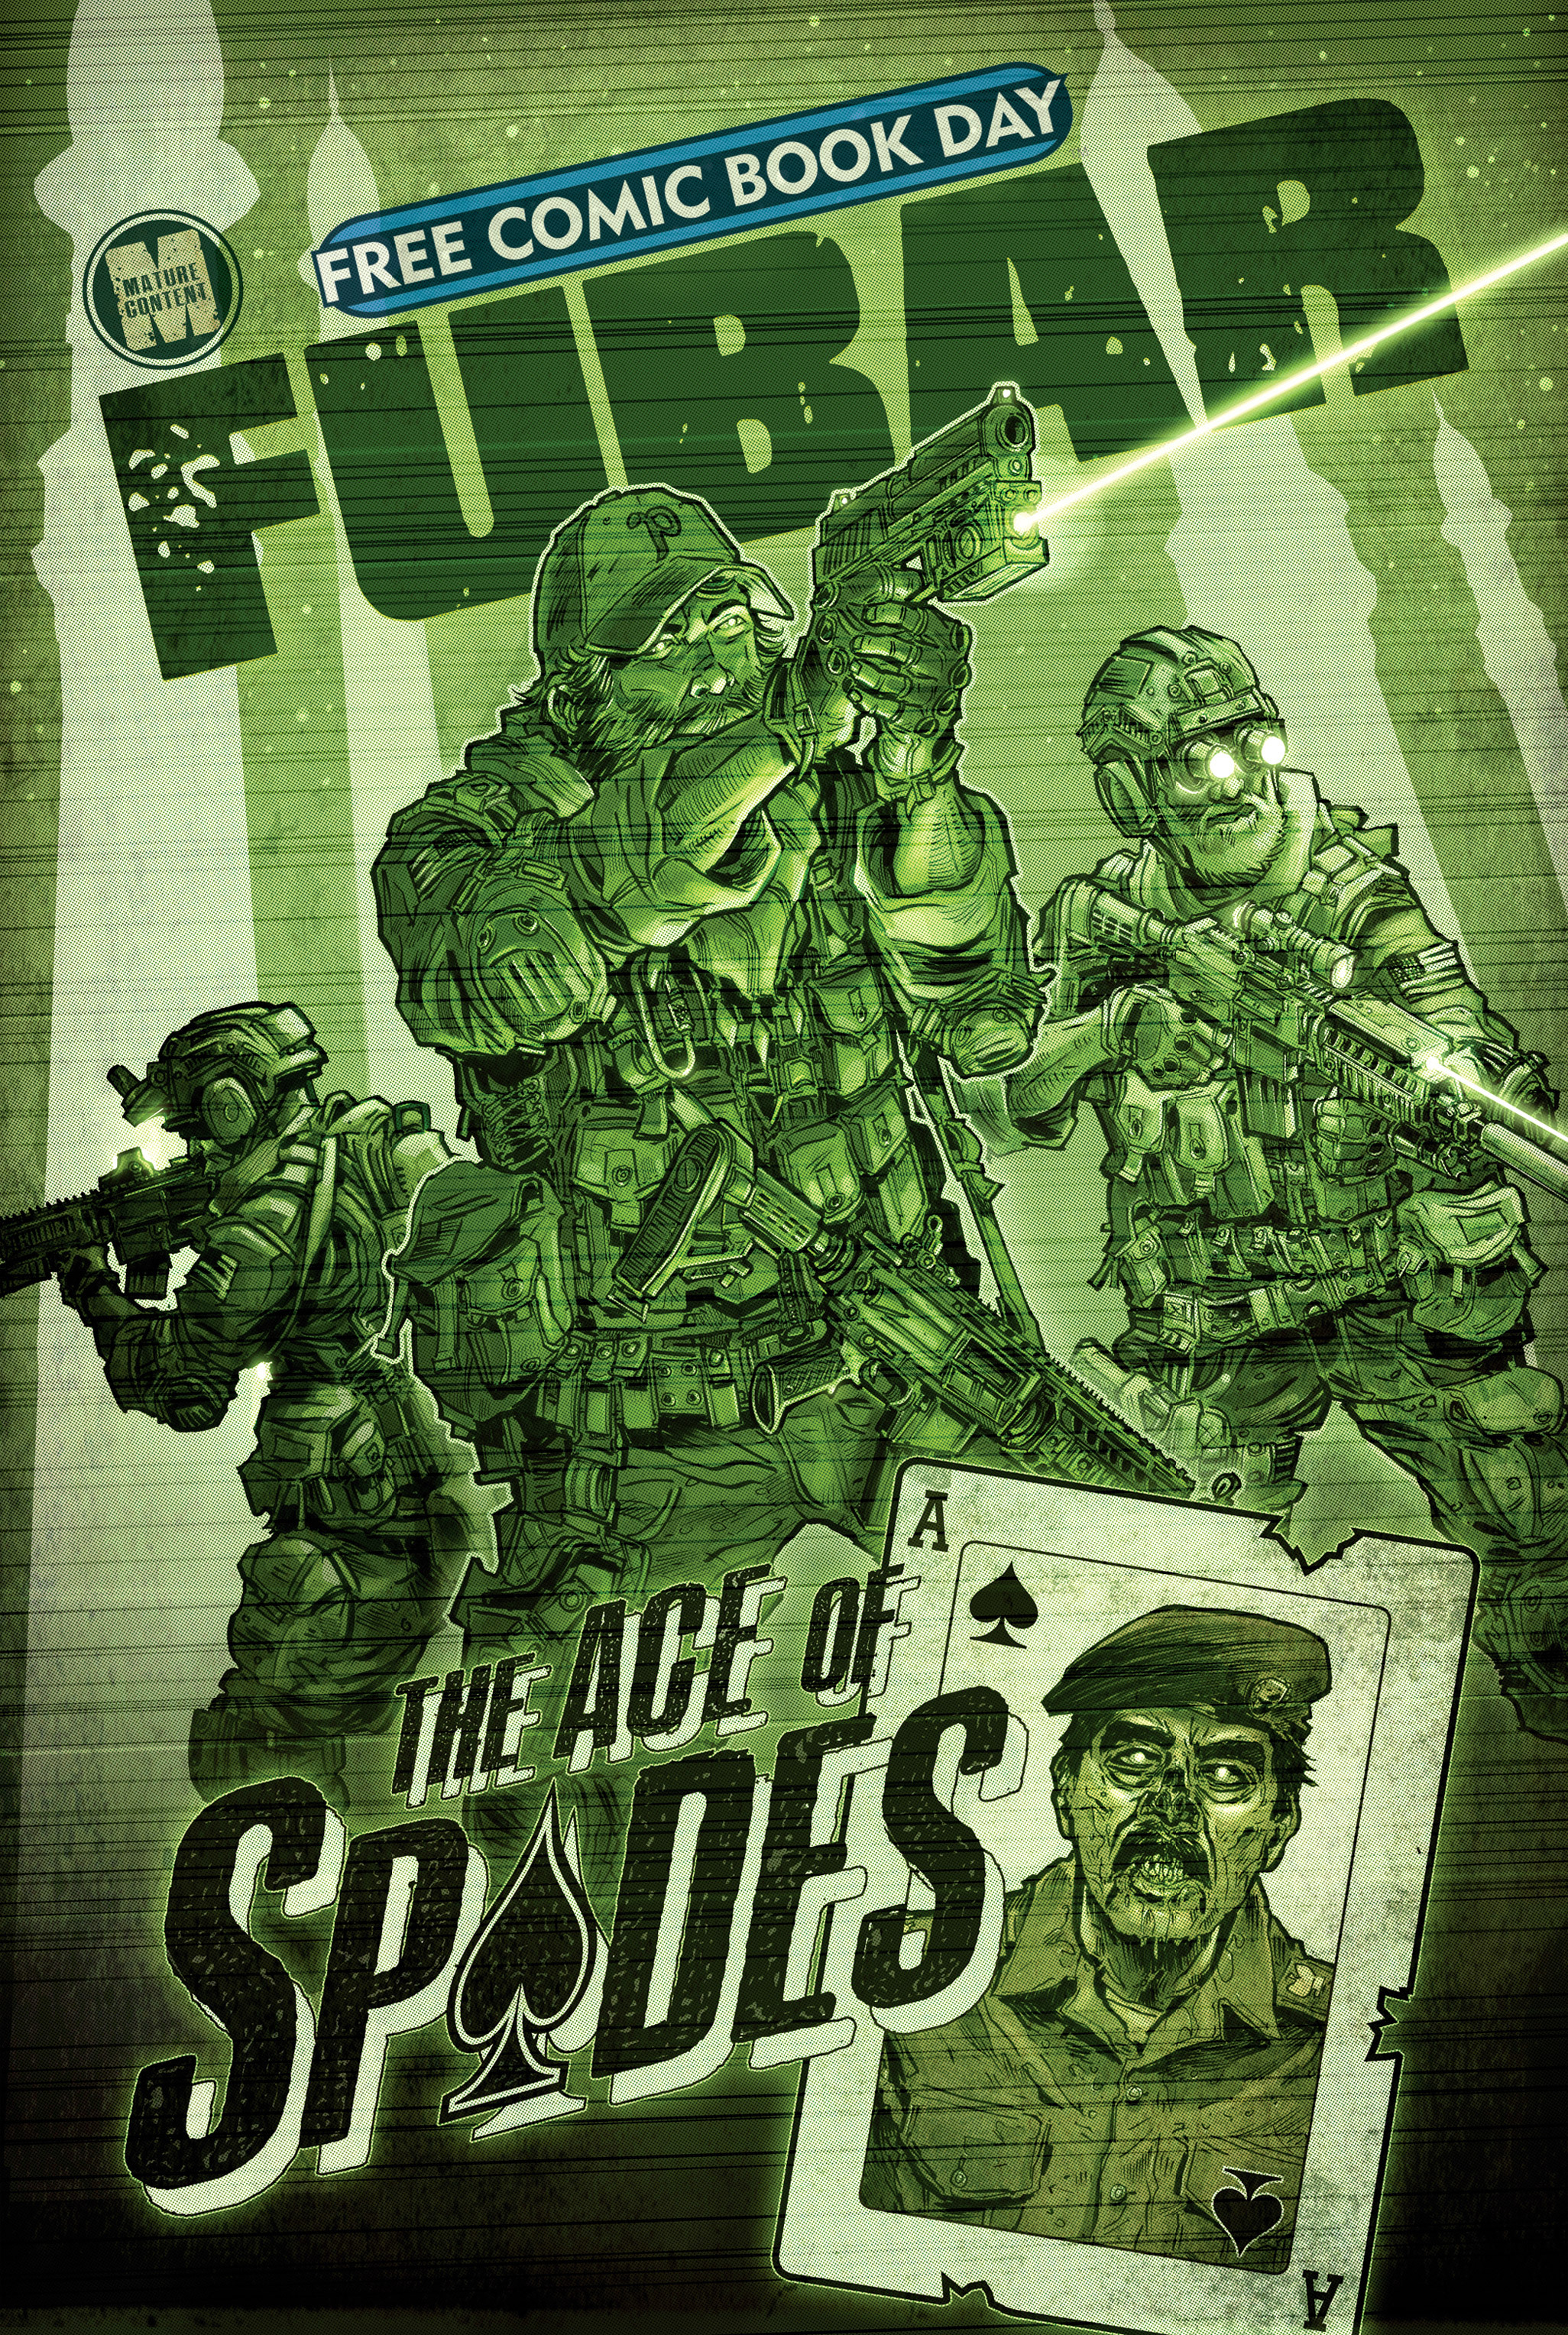 What is fubar online  List of military slang terms  2019-07-13